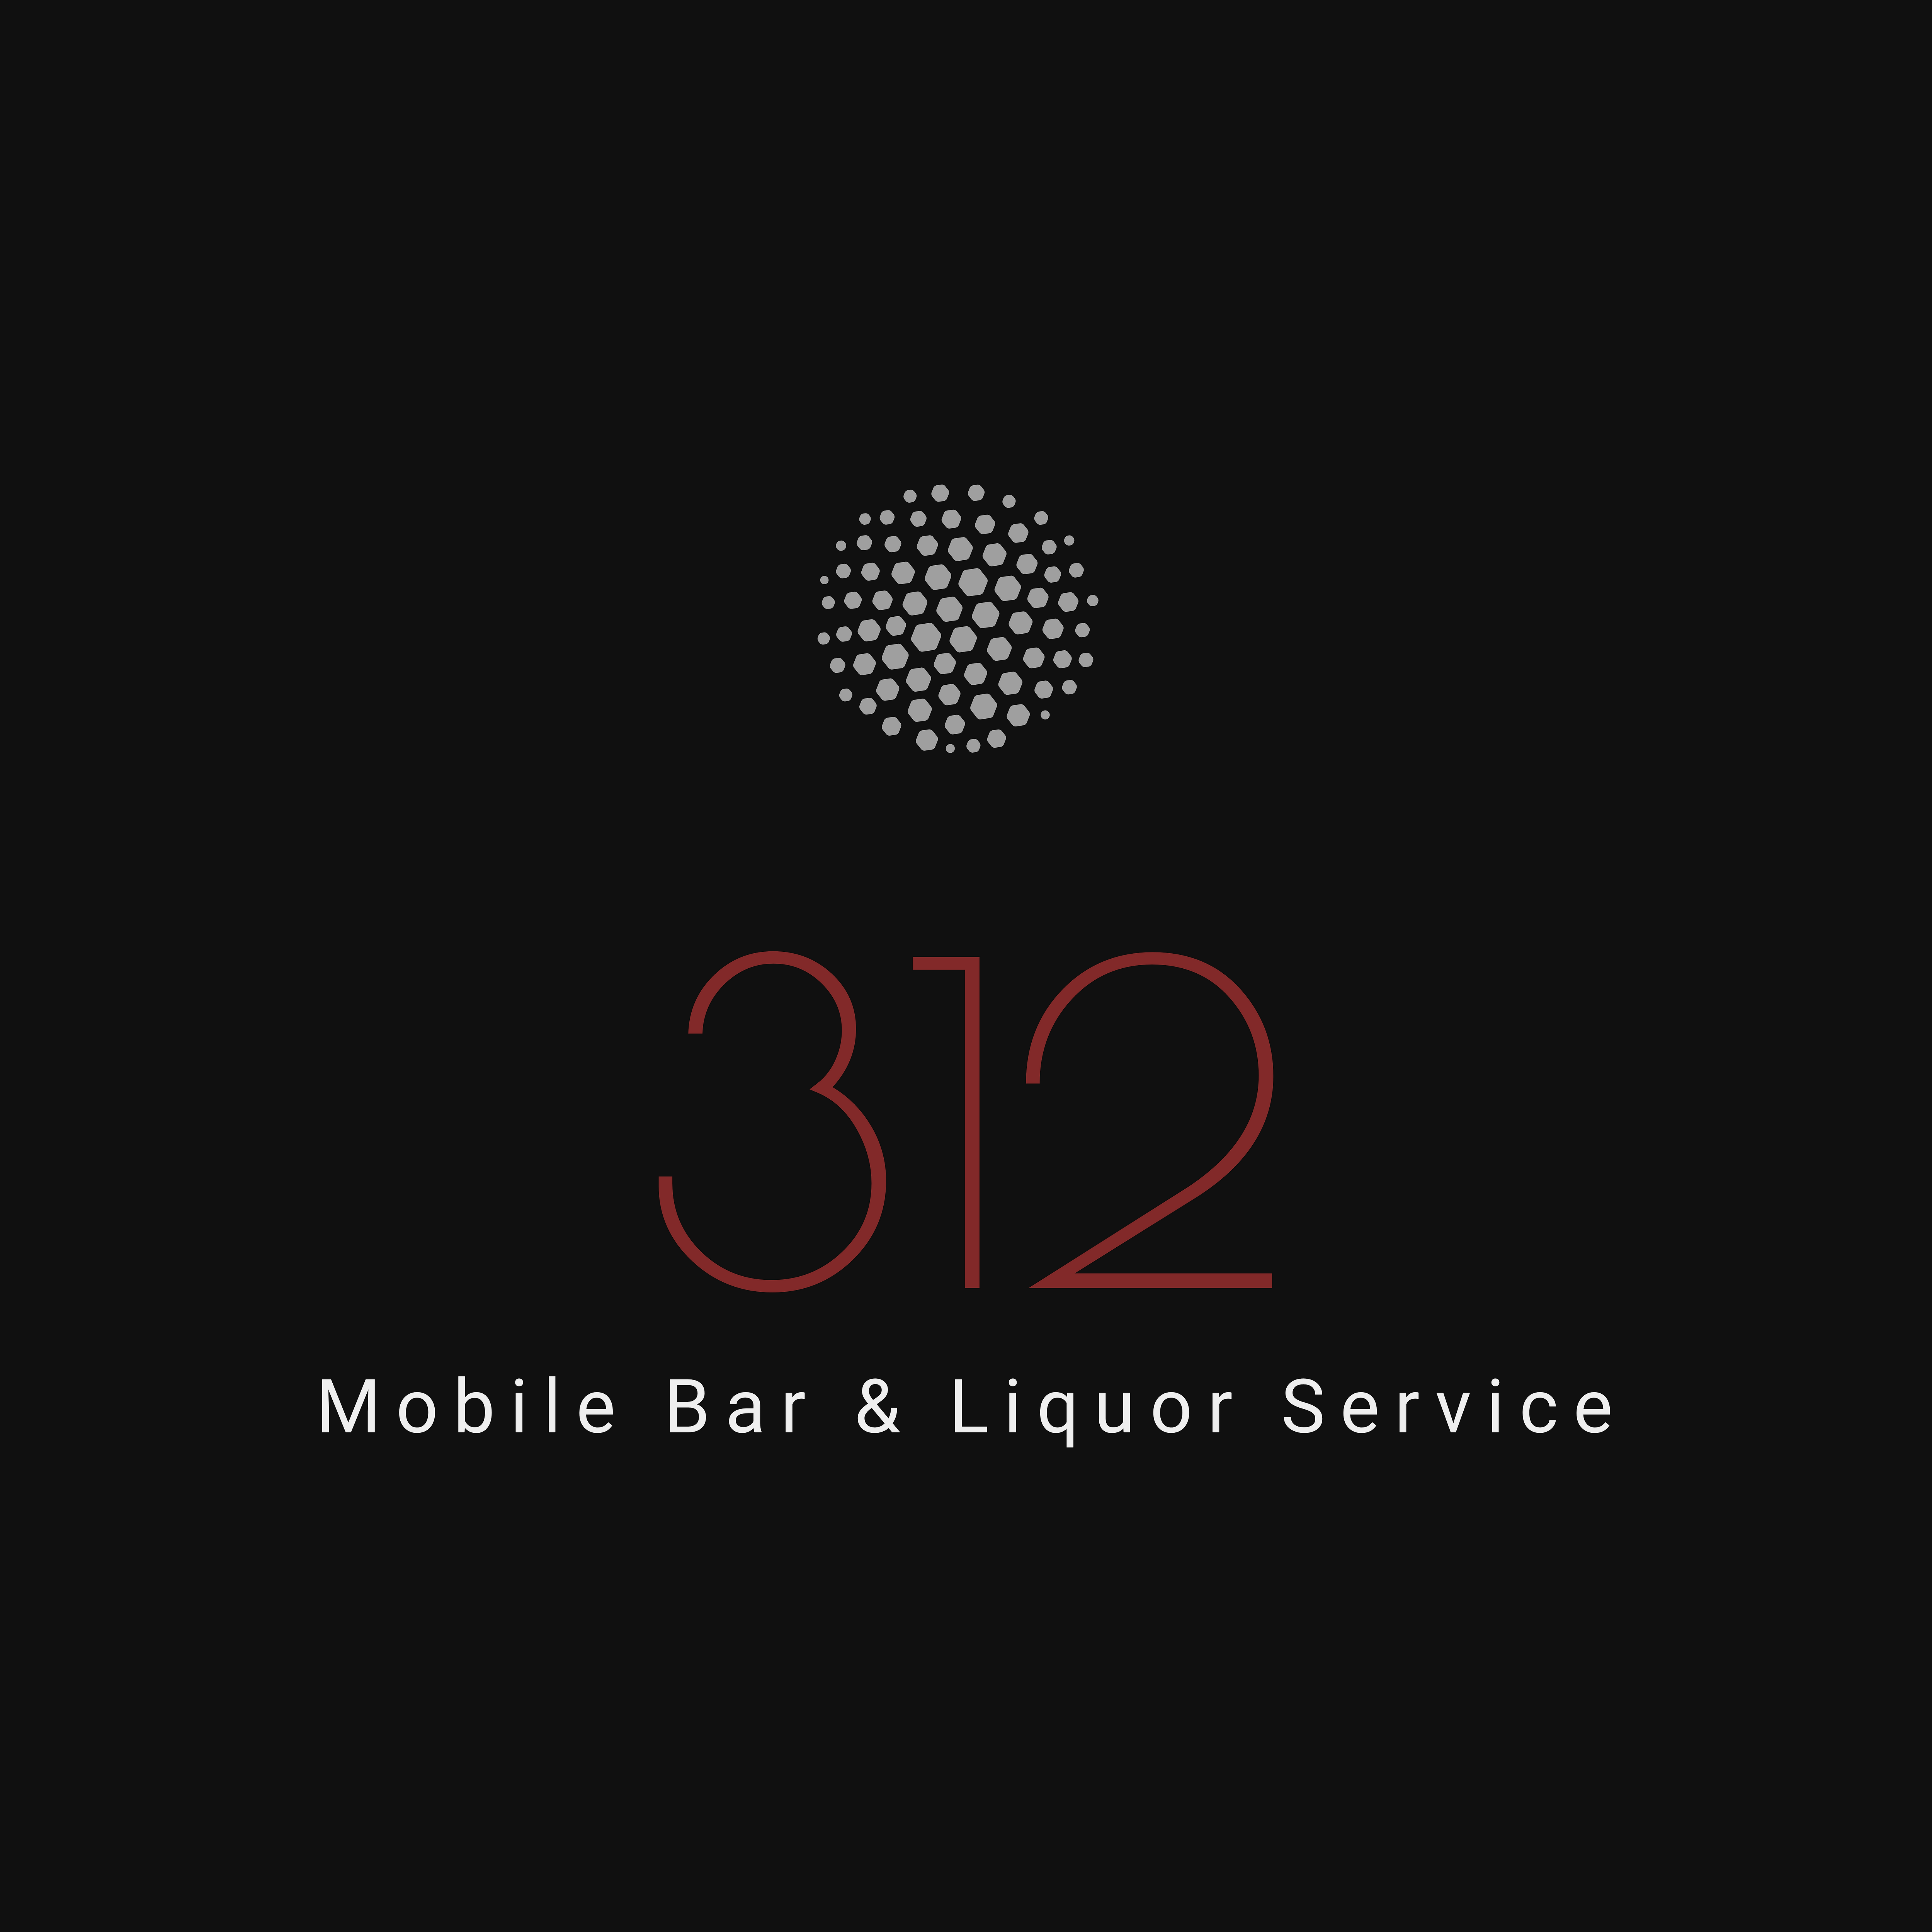 Appointment with Bar Service Planner